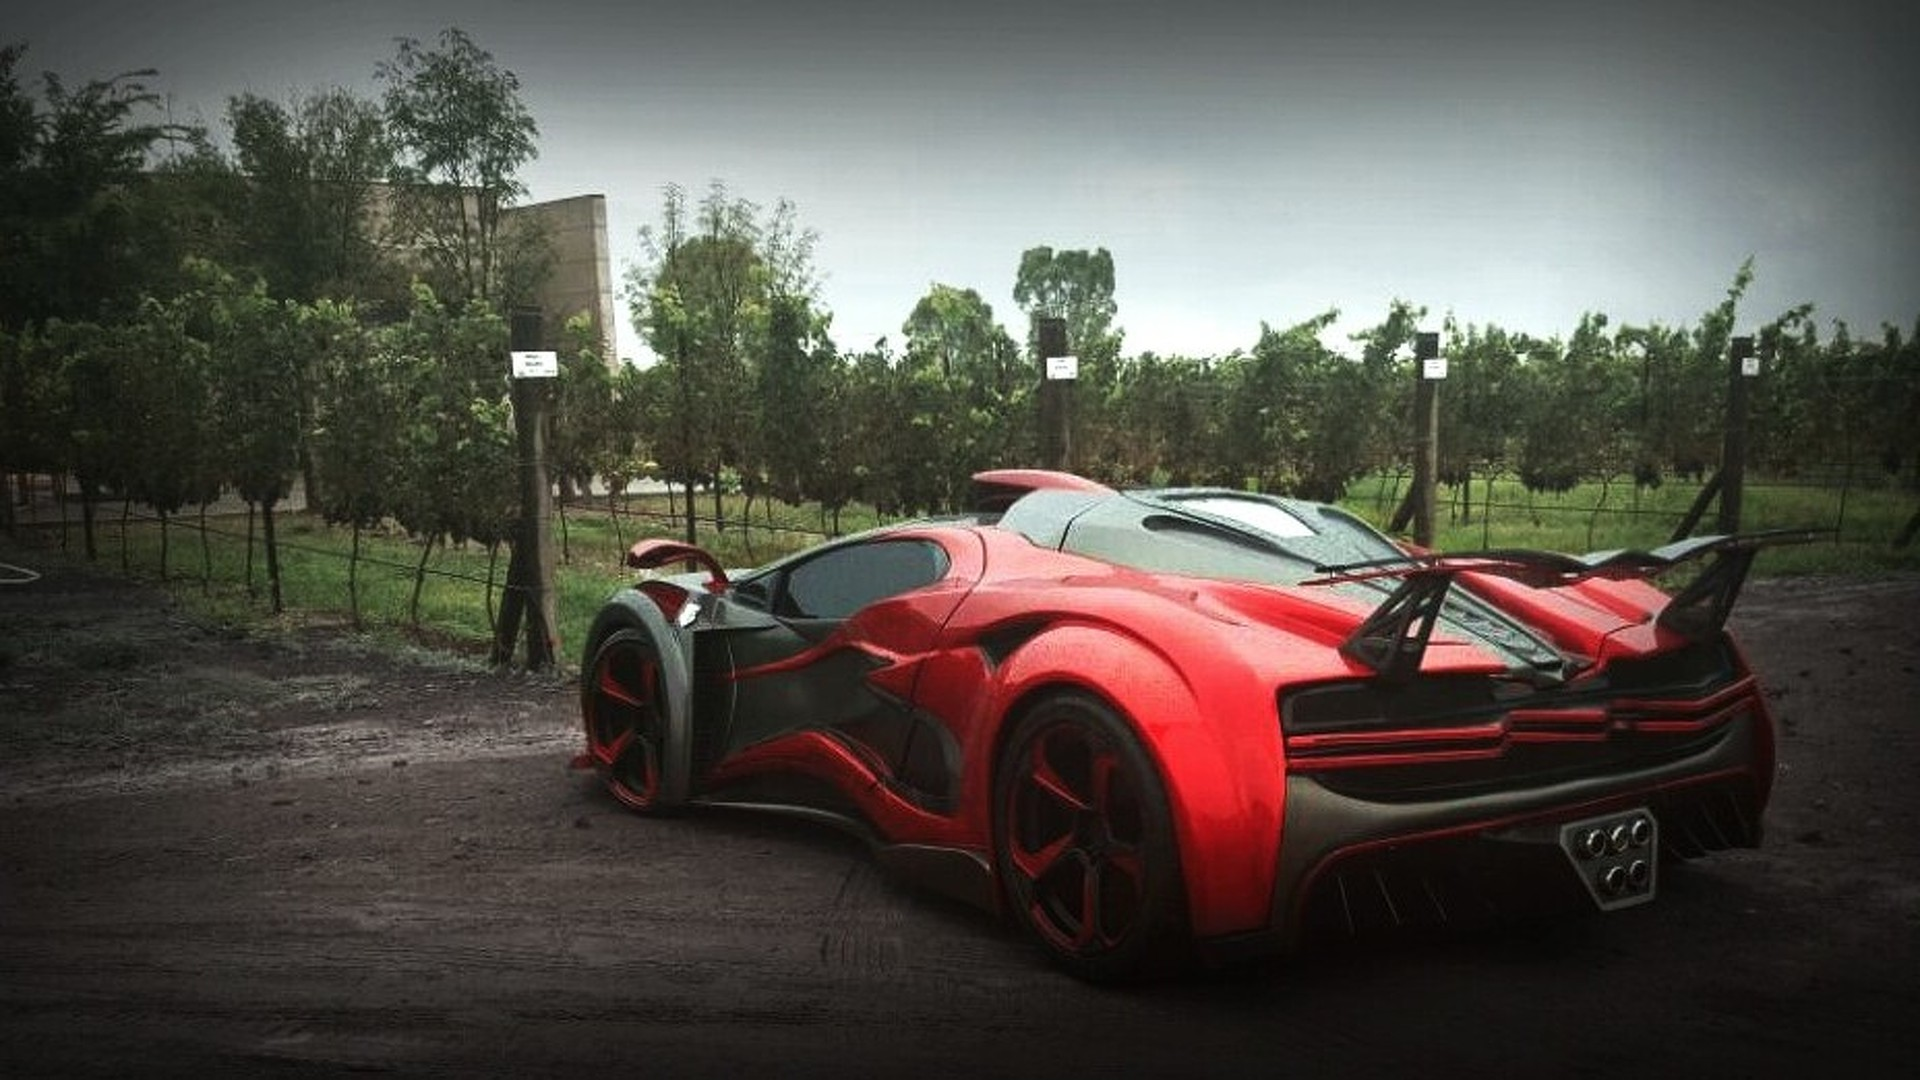 Inferno 1 400 Hp Hypercar Preparing For Production With 2